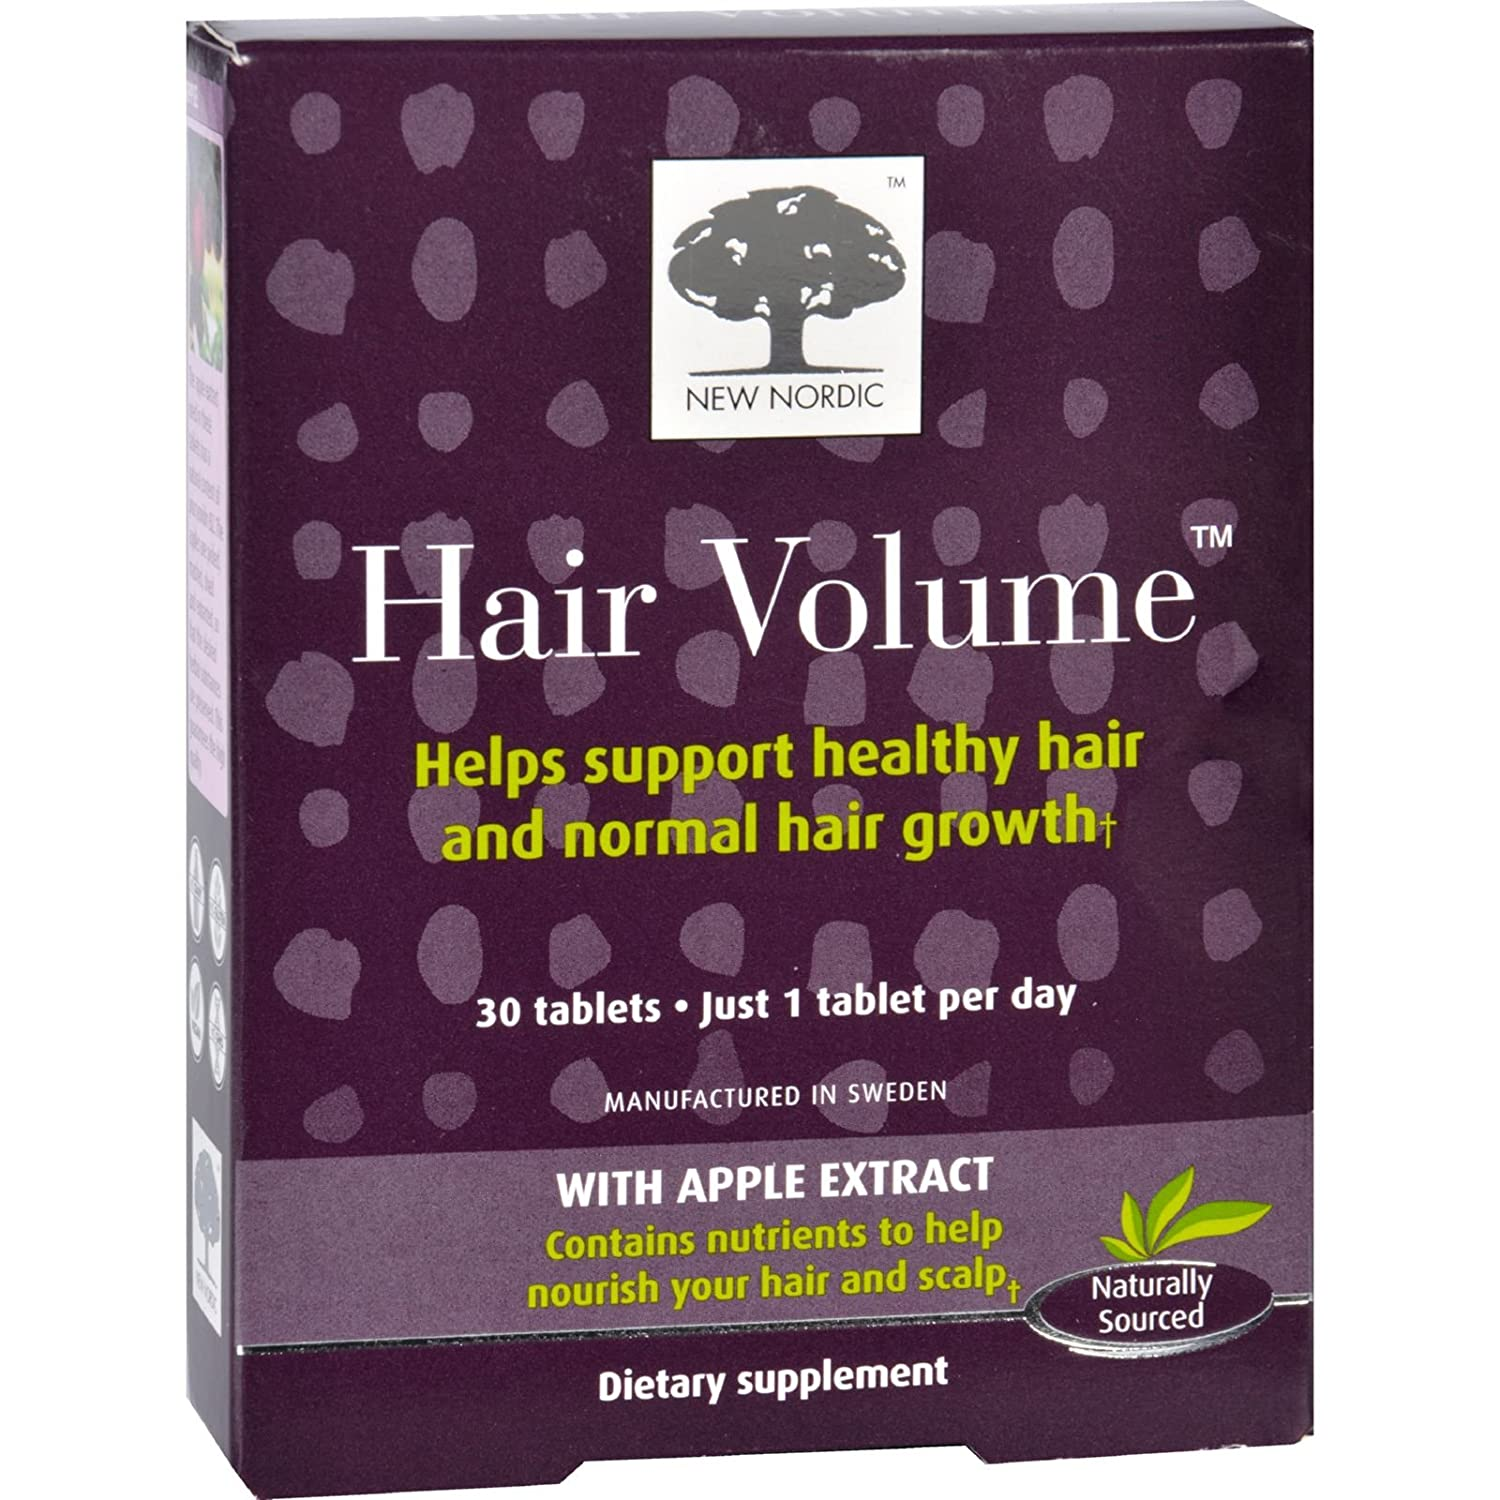 2 Pack of New Nordic Hair Volume, 30 Count